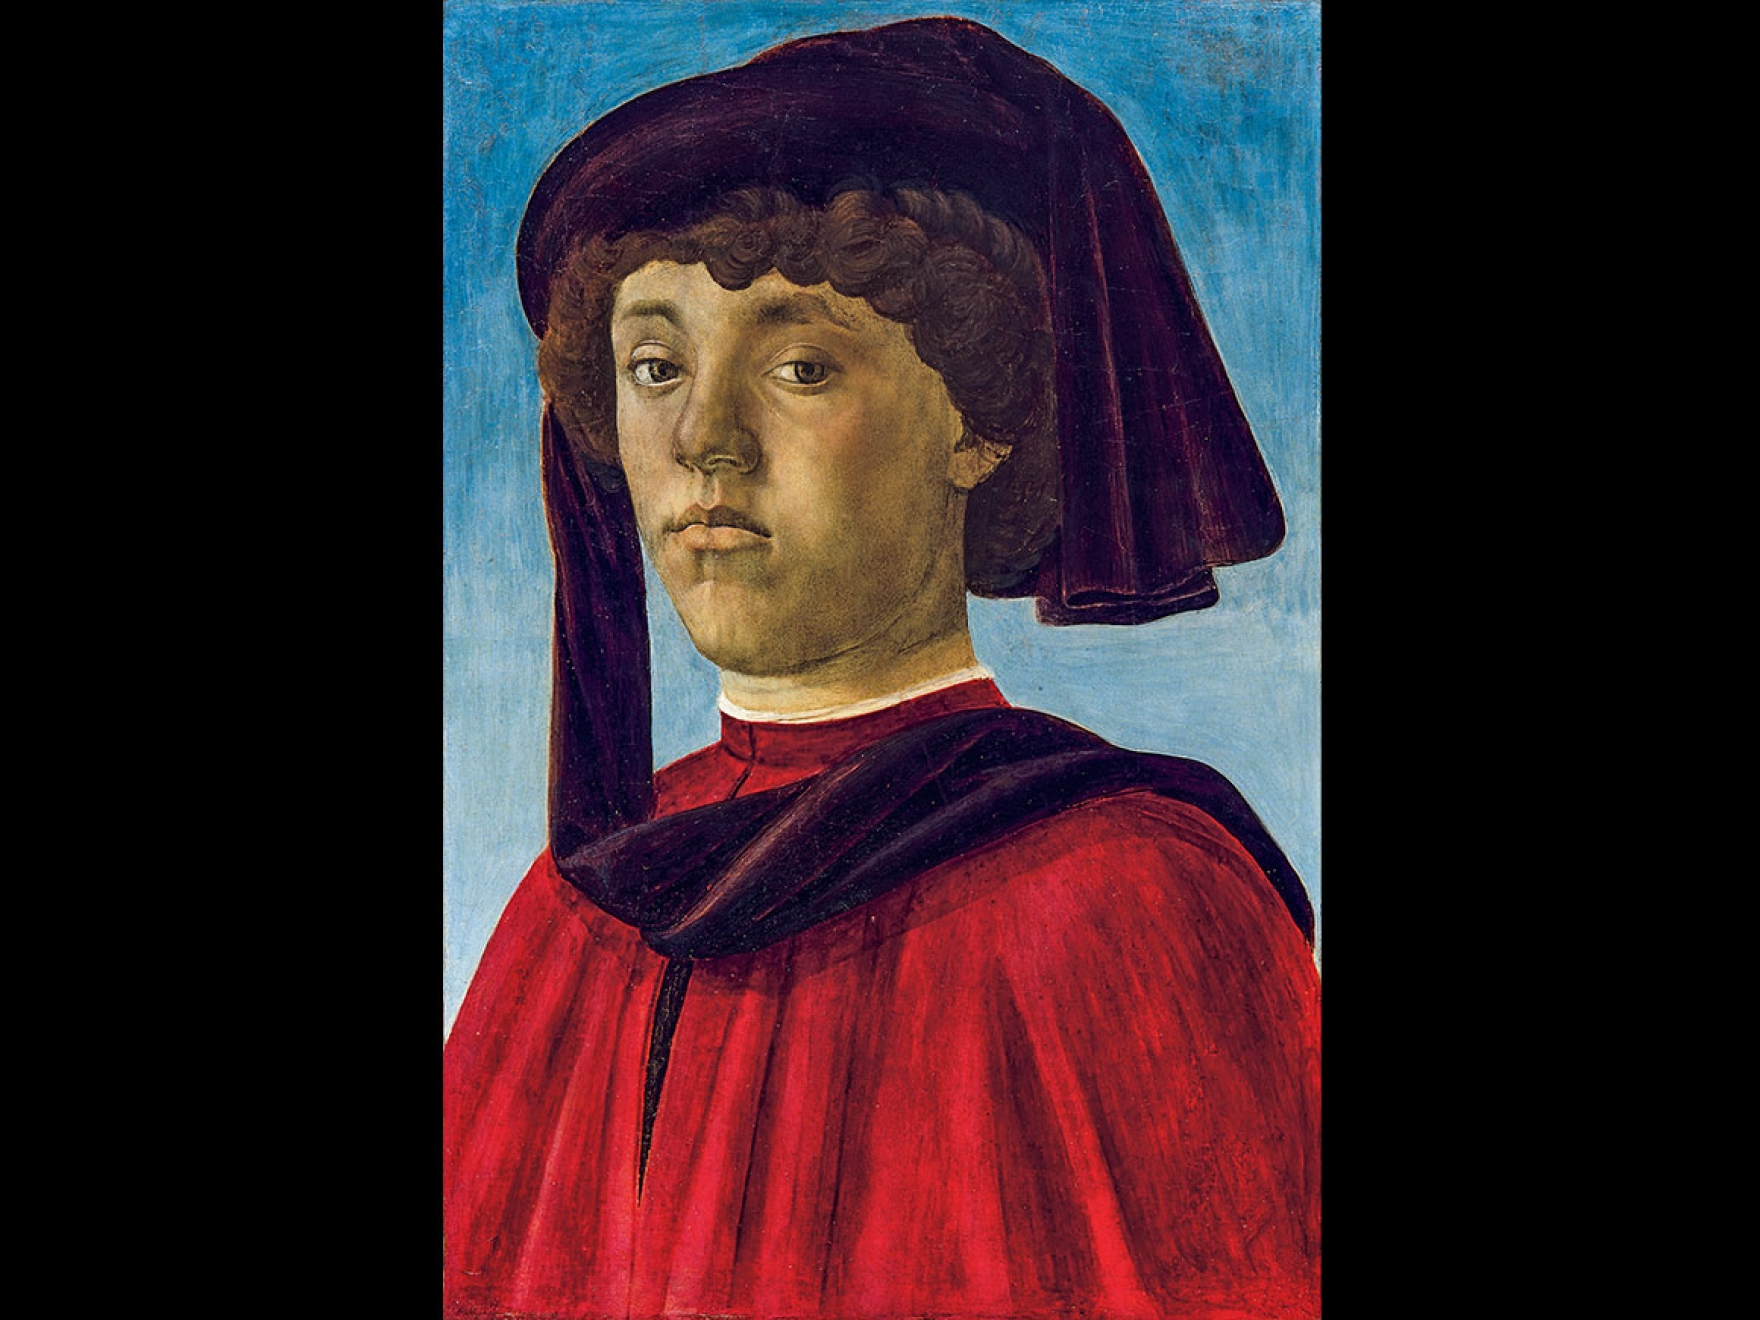 Sandro Botticelli's painting, Portrait of a Youth, 1470s